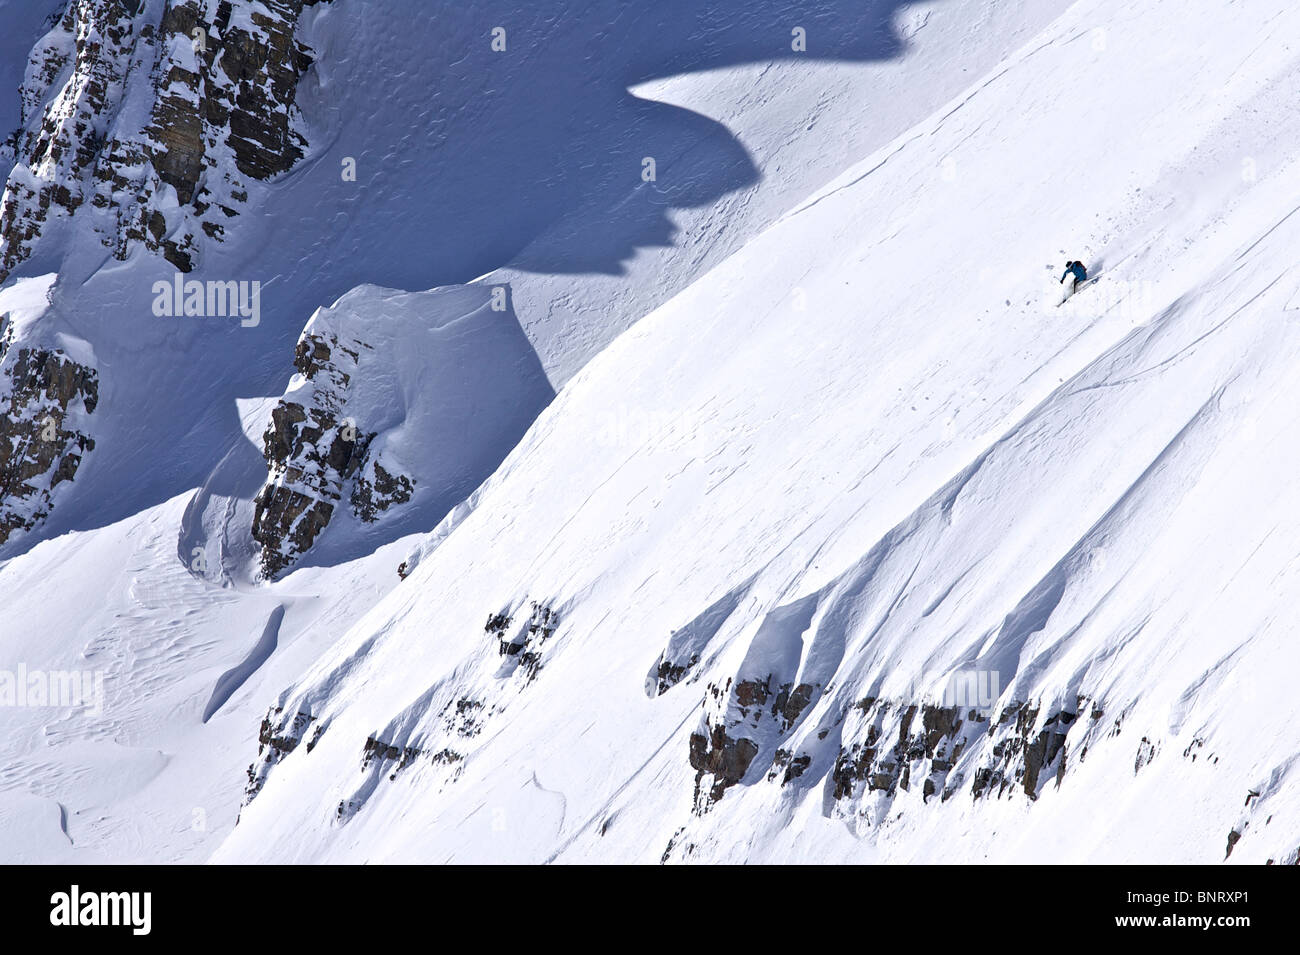 A man skis a steep line in Wyoming. - Stock Image